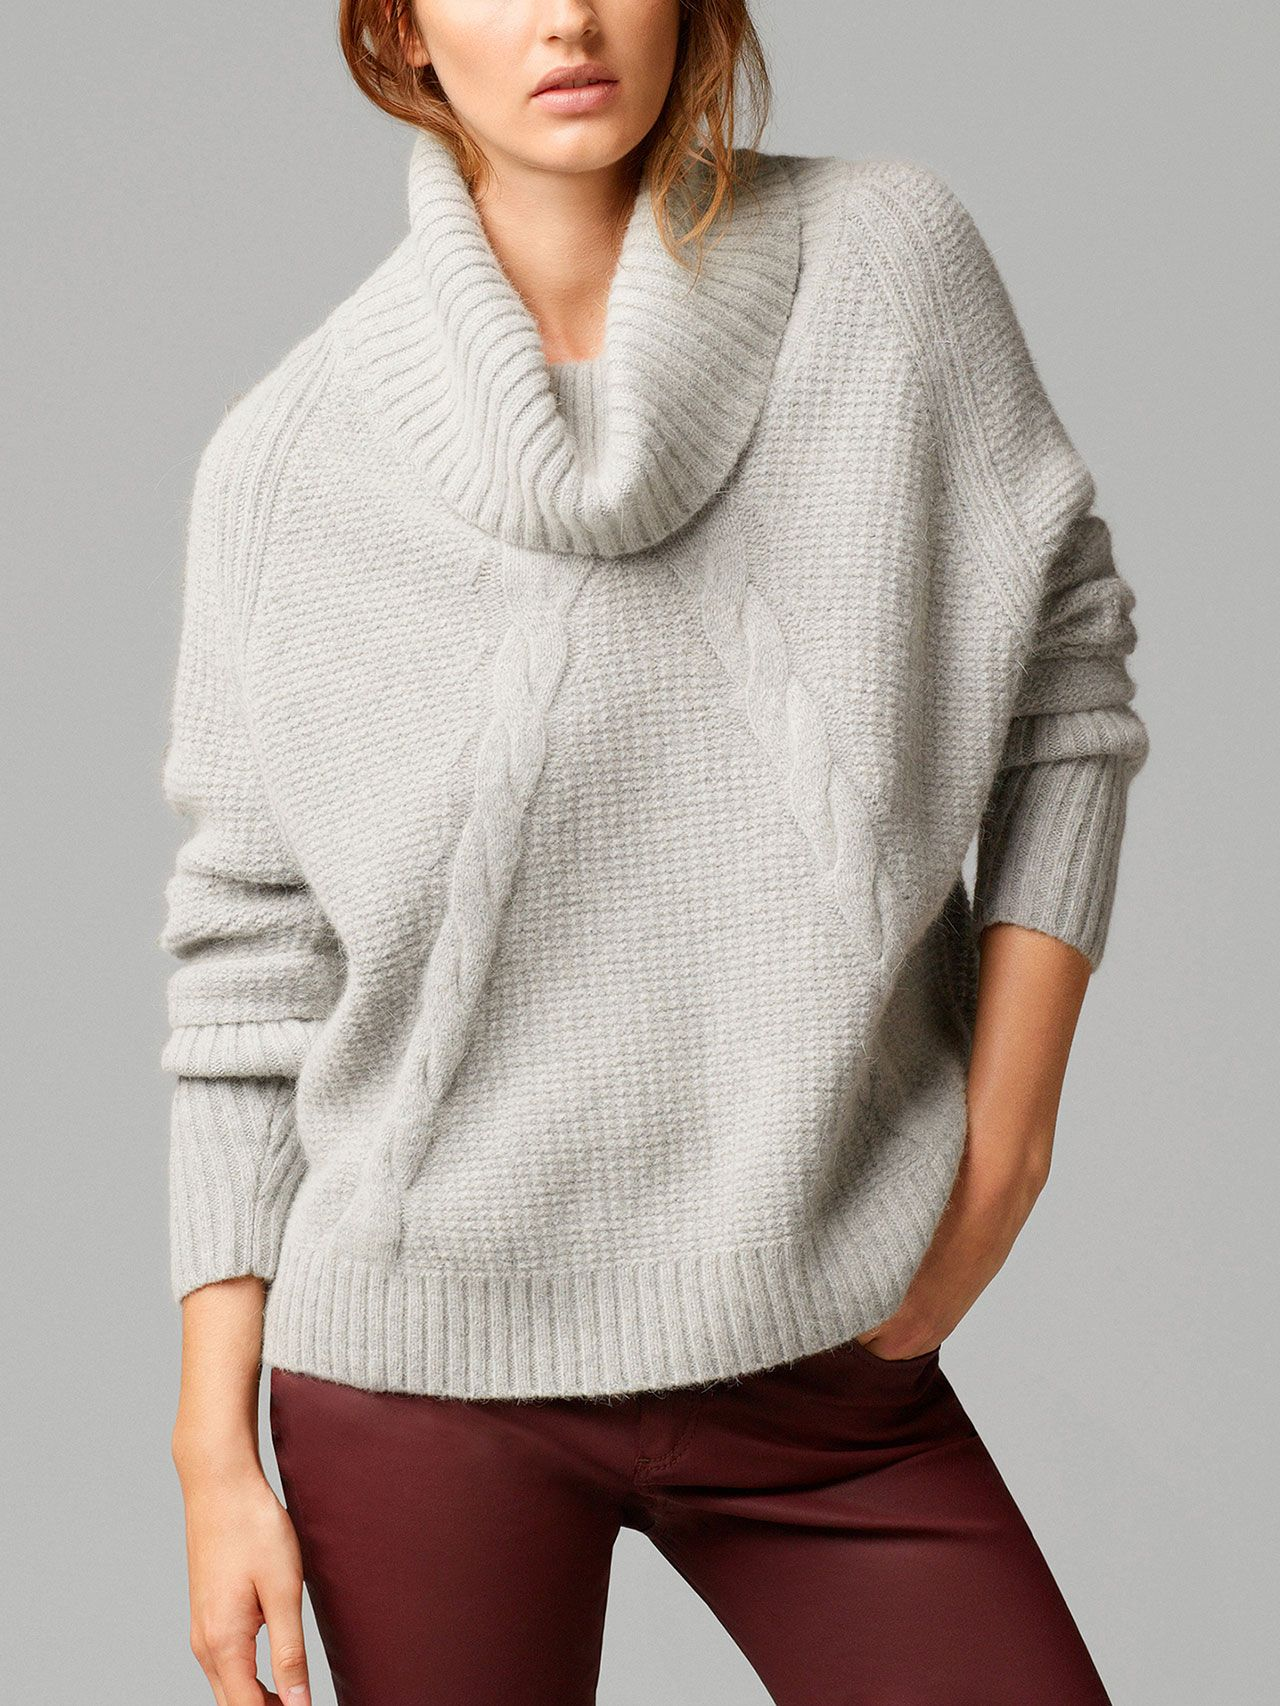 7724449778 OVERSIZE CABLE-KNIT SWEATER